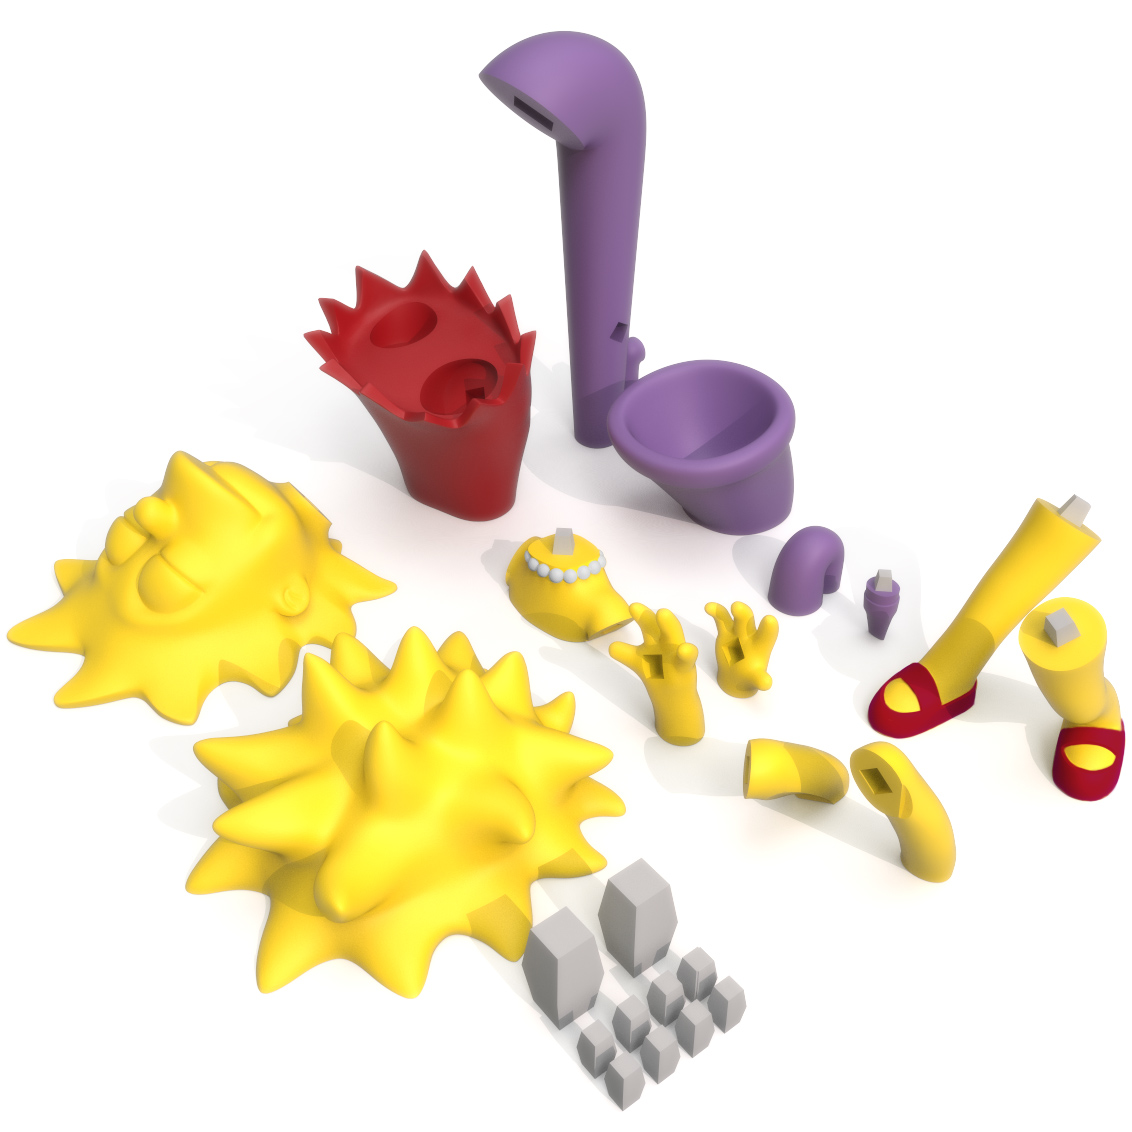 Lisa Simpson Print Bed, 3D Printer Models